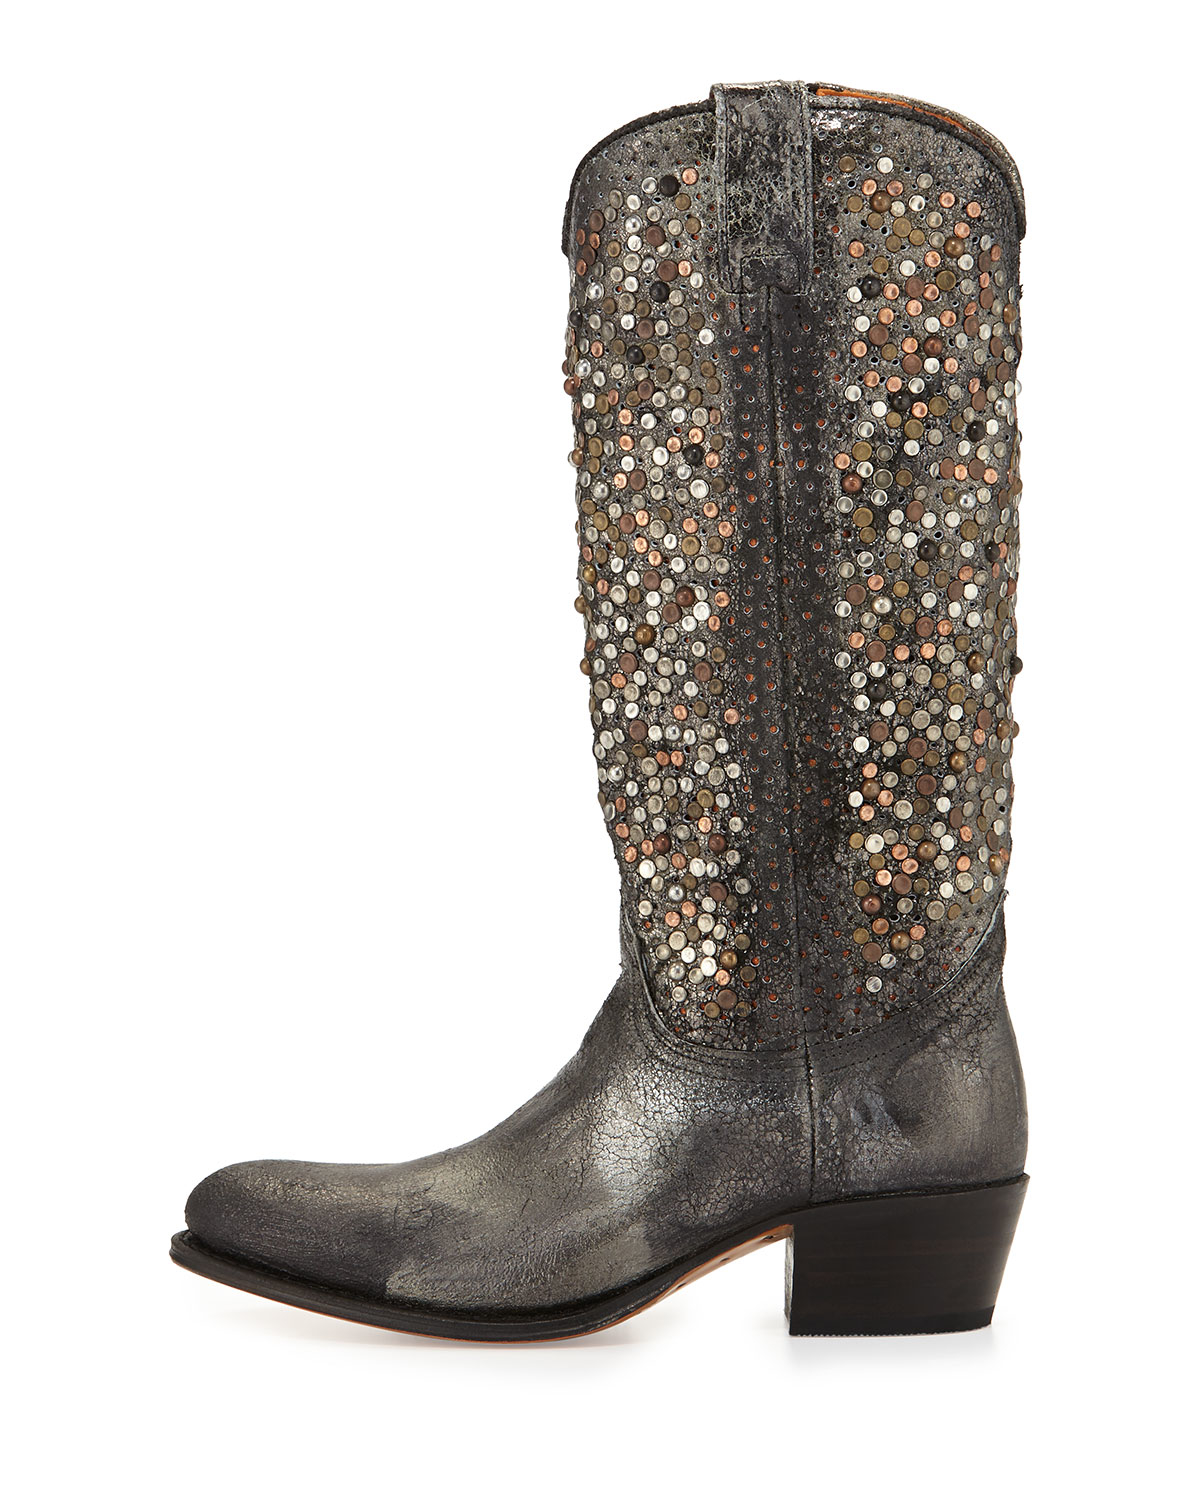 Lyst Frye Deborah Studded Vintage Leather Boot In Brown